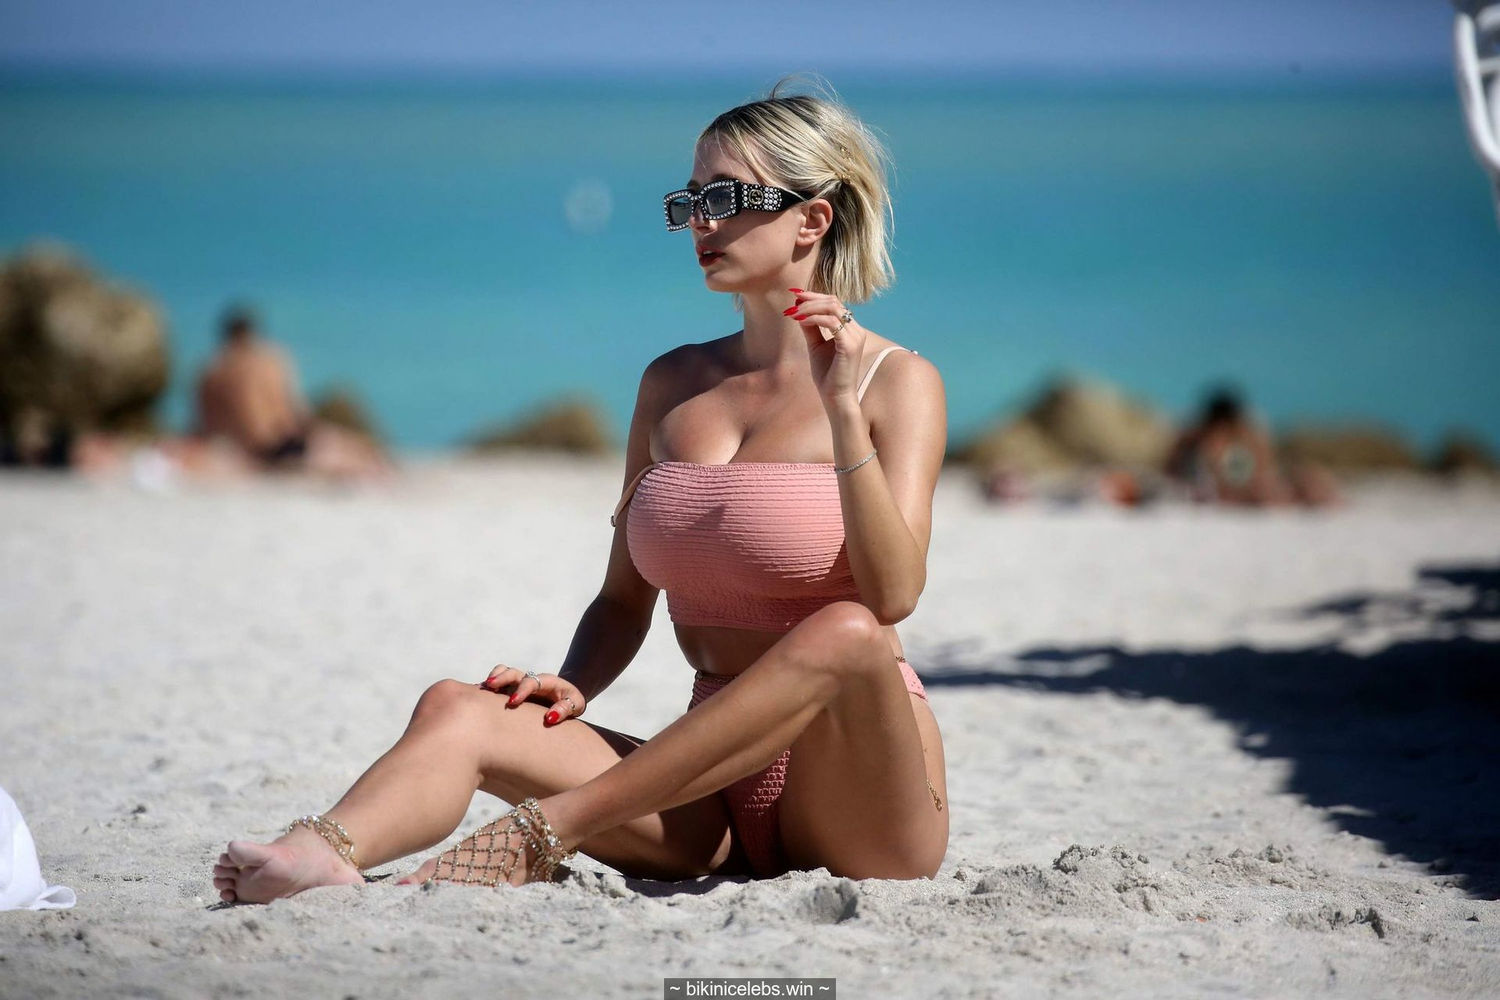 Busty Caroline Vreeland wearing a bikini at a beach